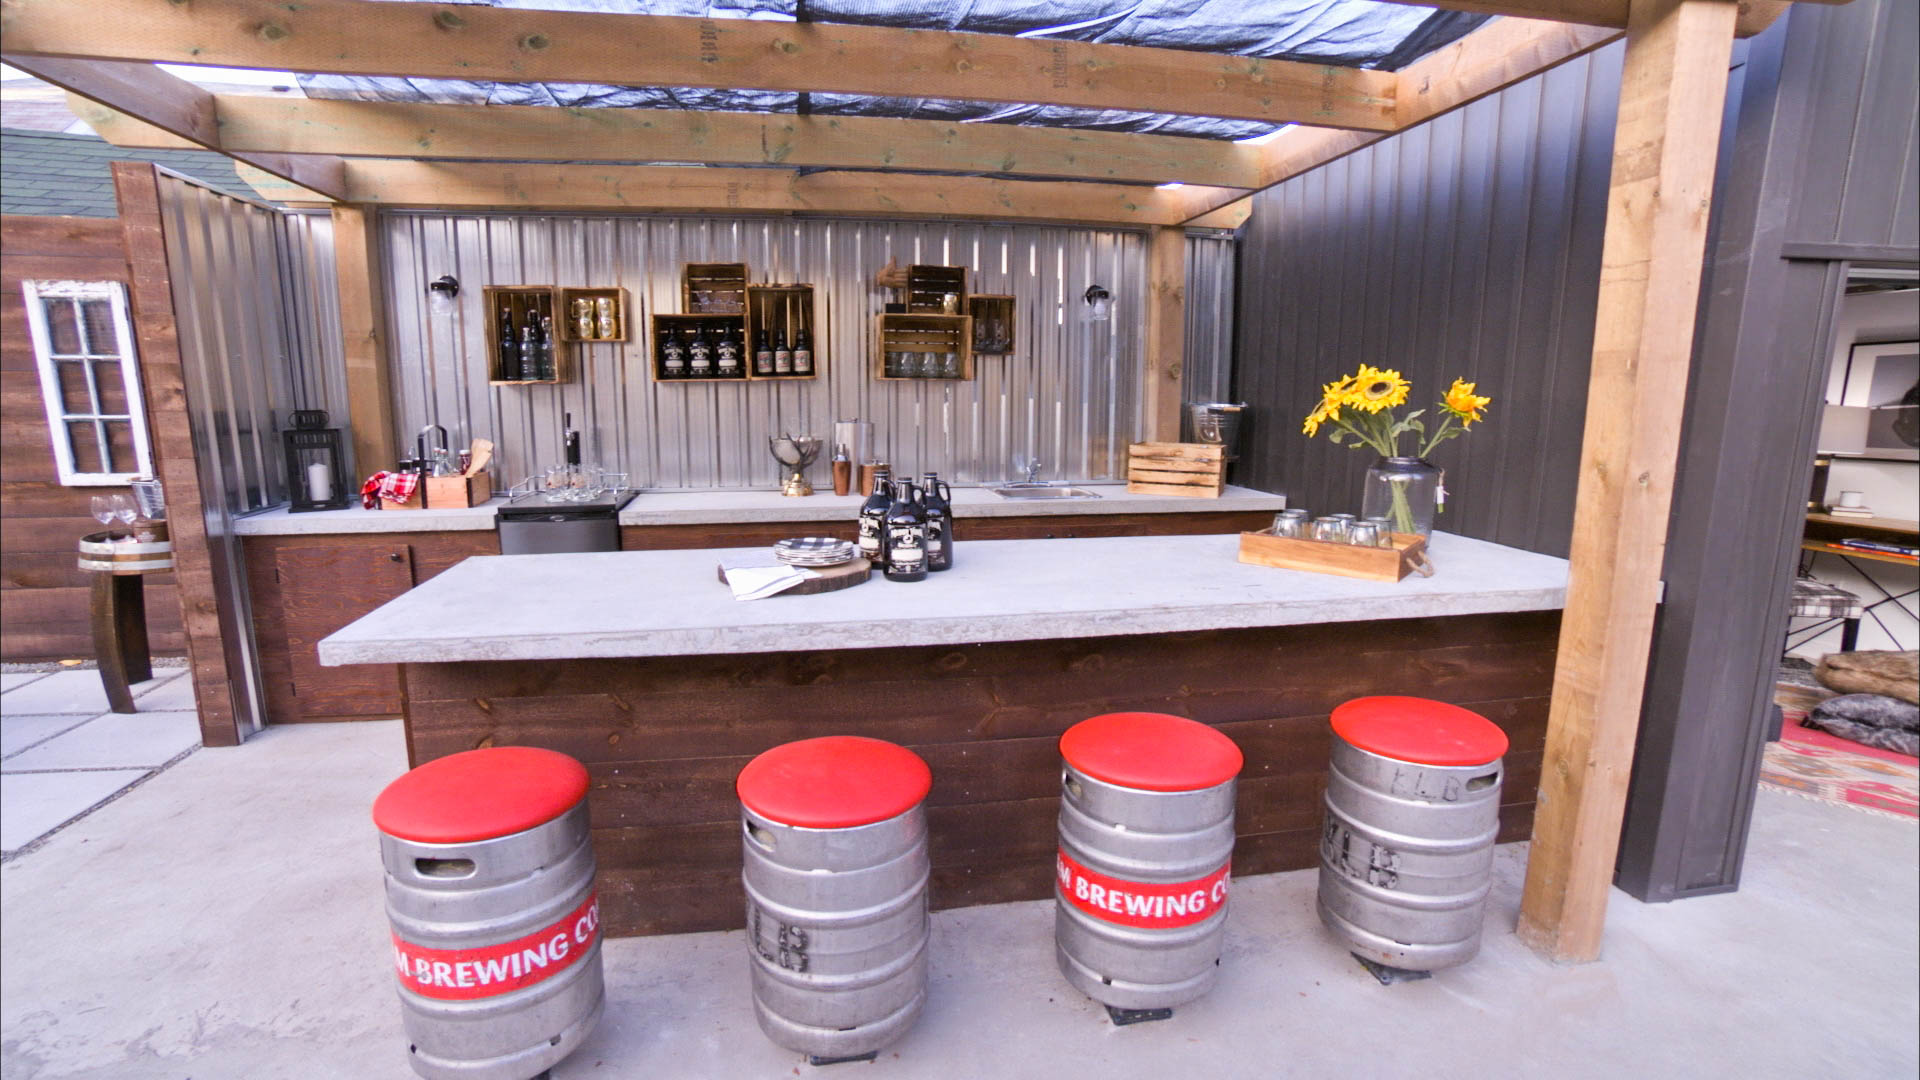 couple living with in laws build backyard sports bar to hide in